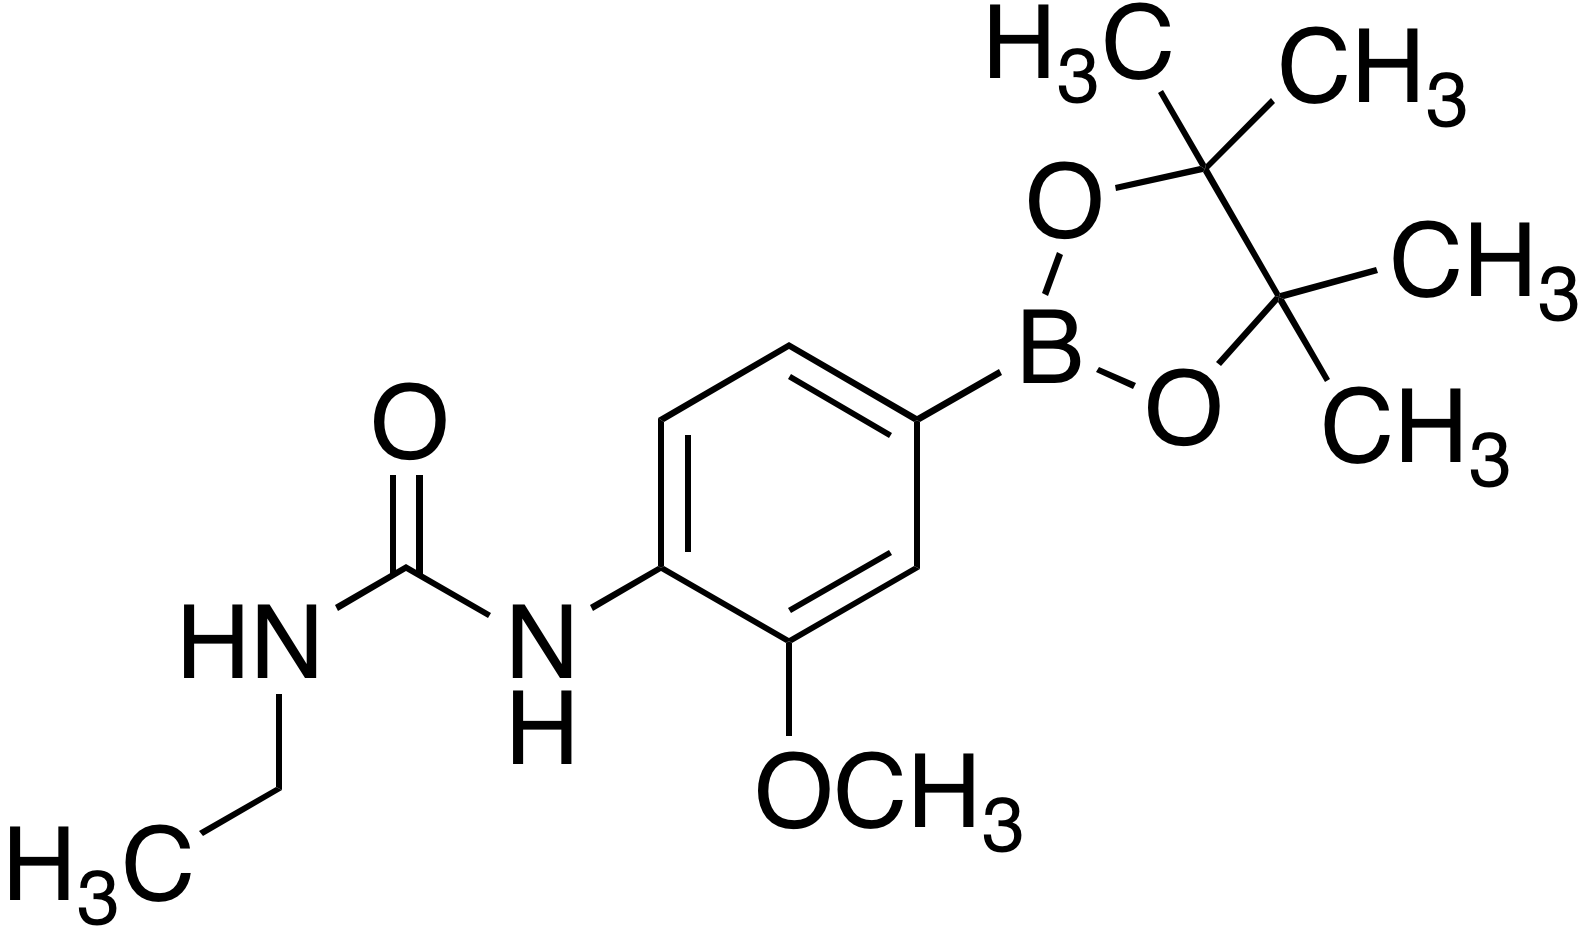 4-(3-Ethylureido)-3-methoxyphenylboronic acid pinacol ester